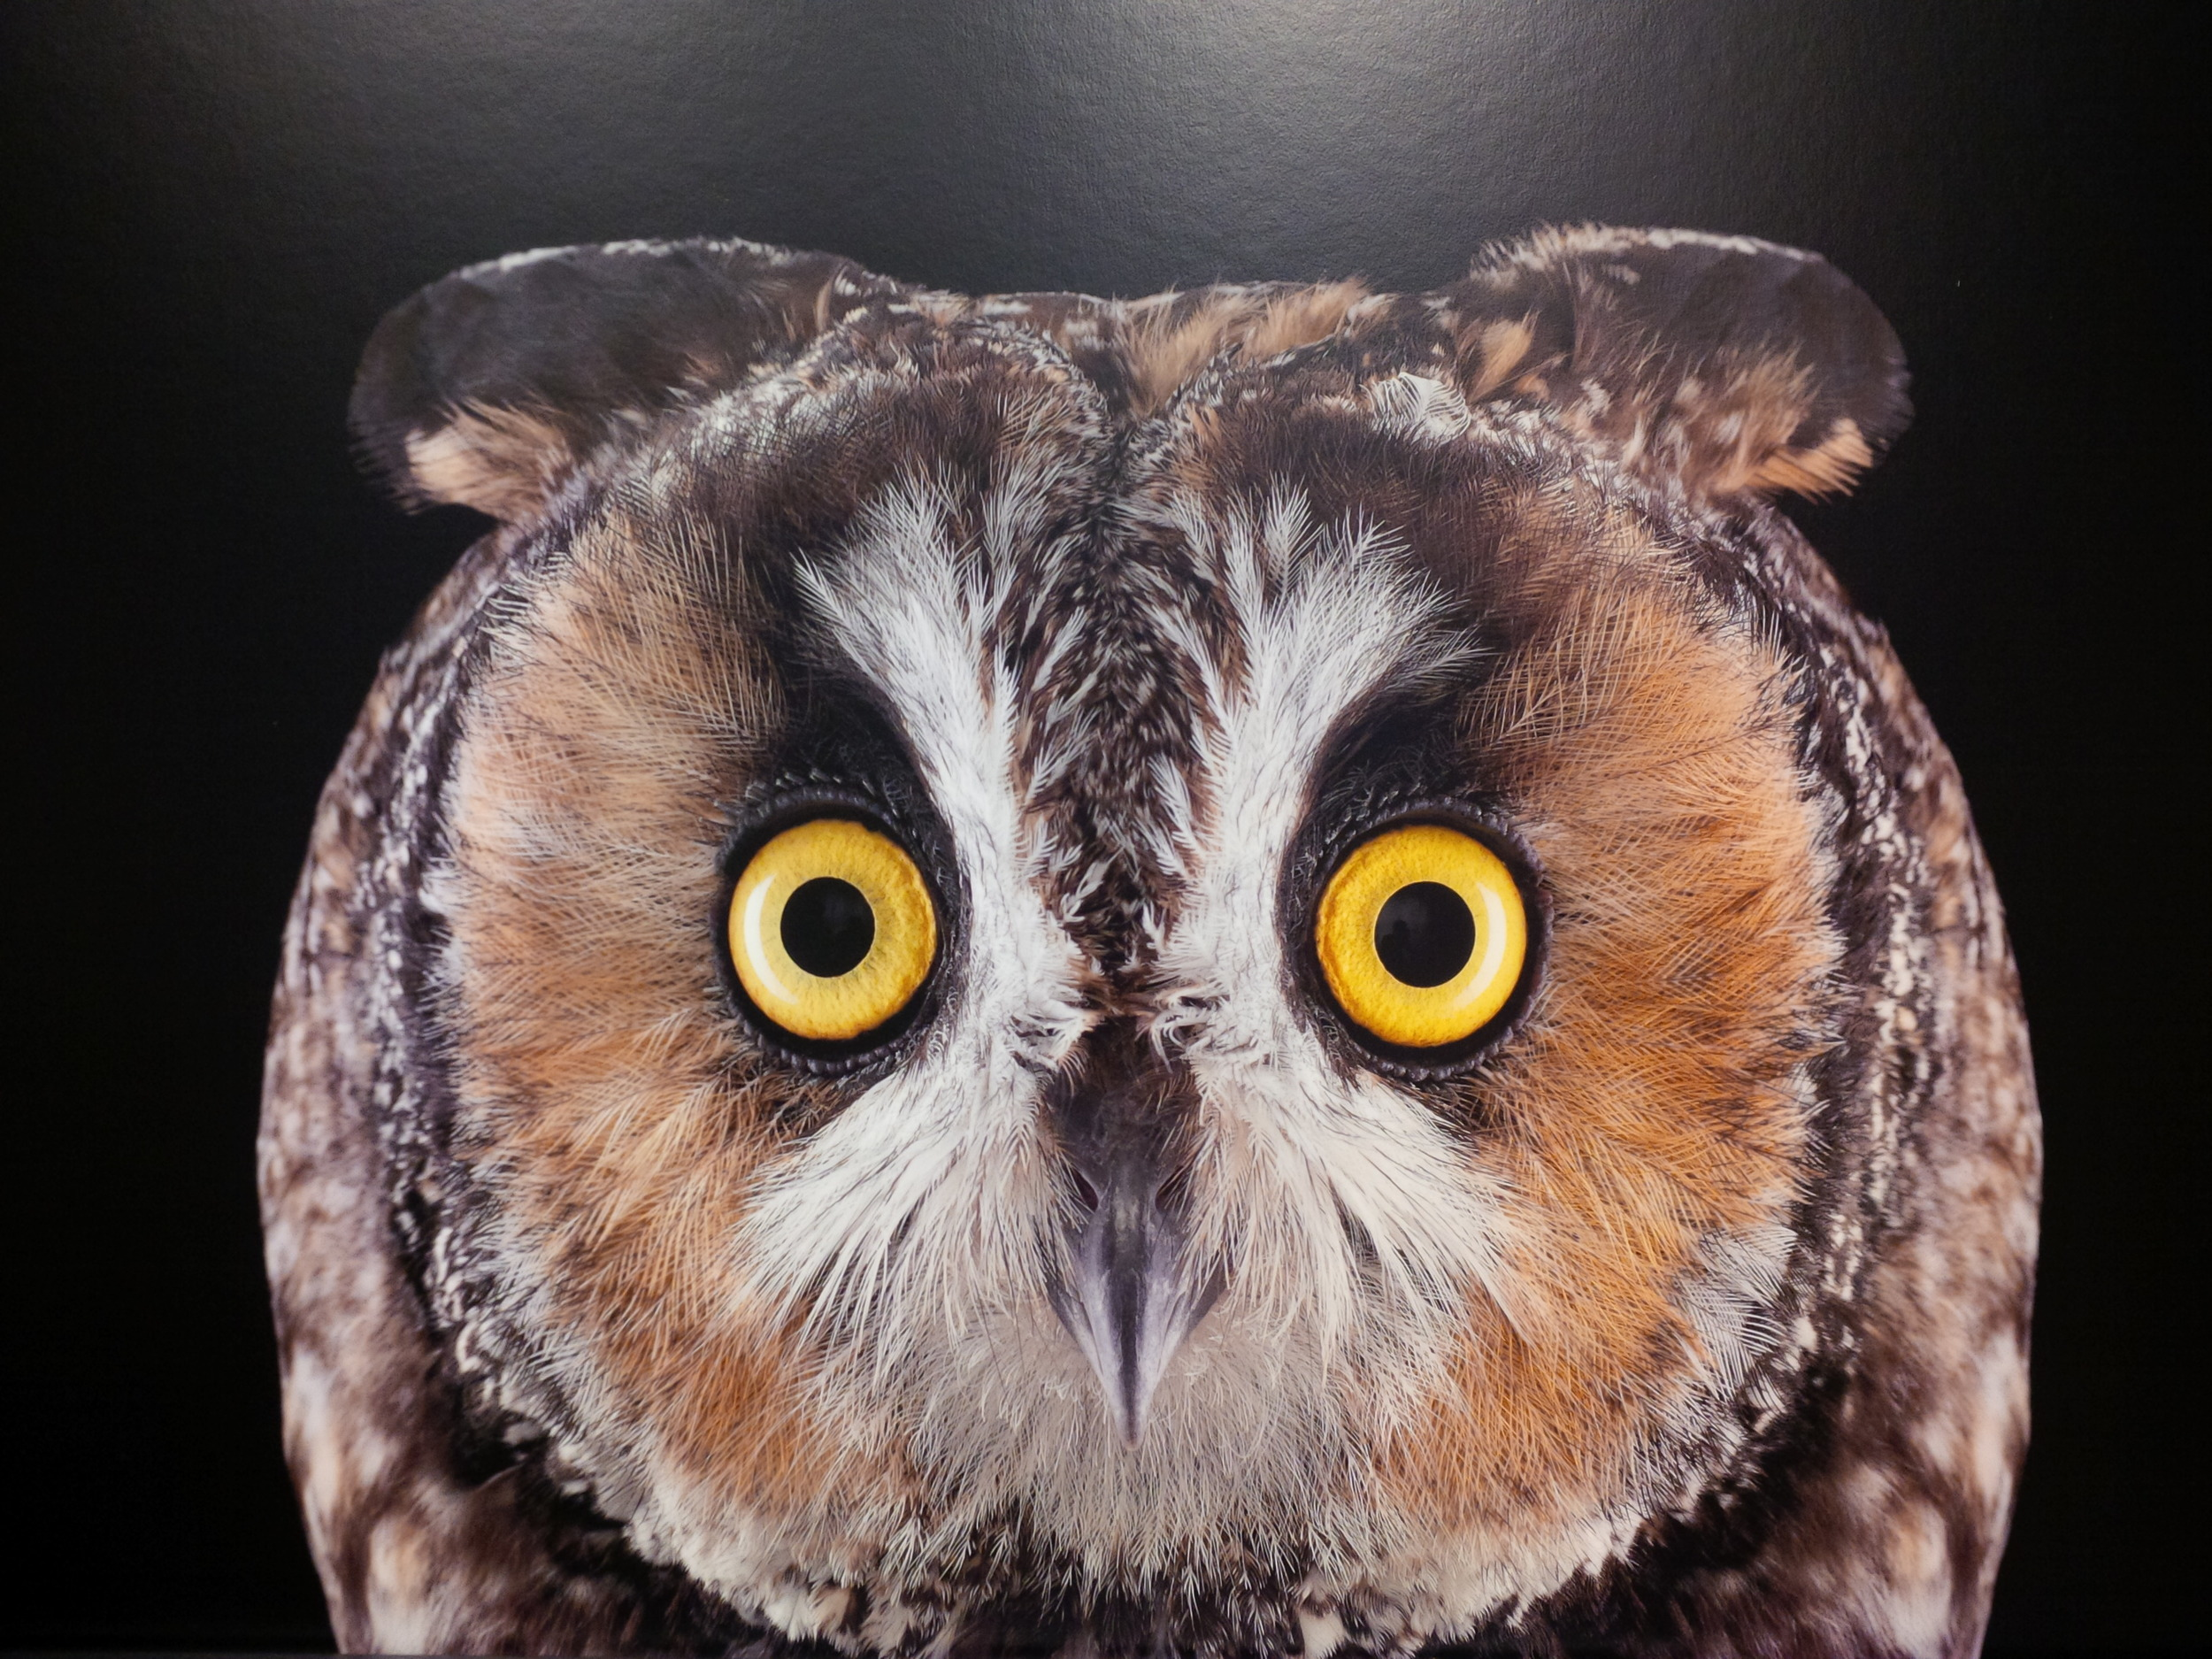 Long-Eared Owl by Brad Wilson, at an exhibit I saw in Santa Fe in September 2014.